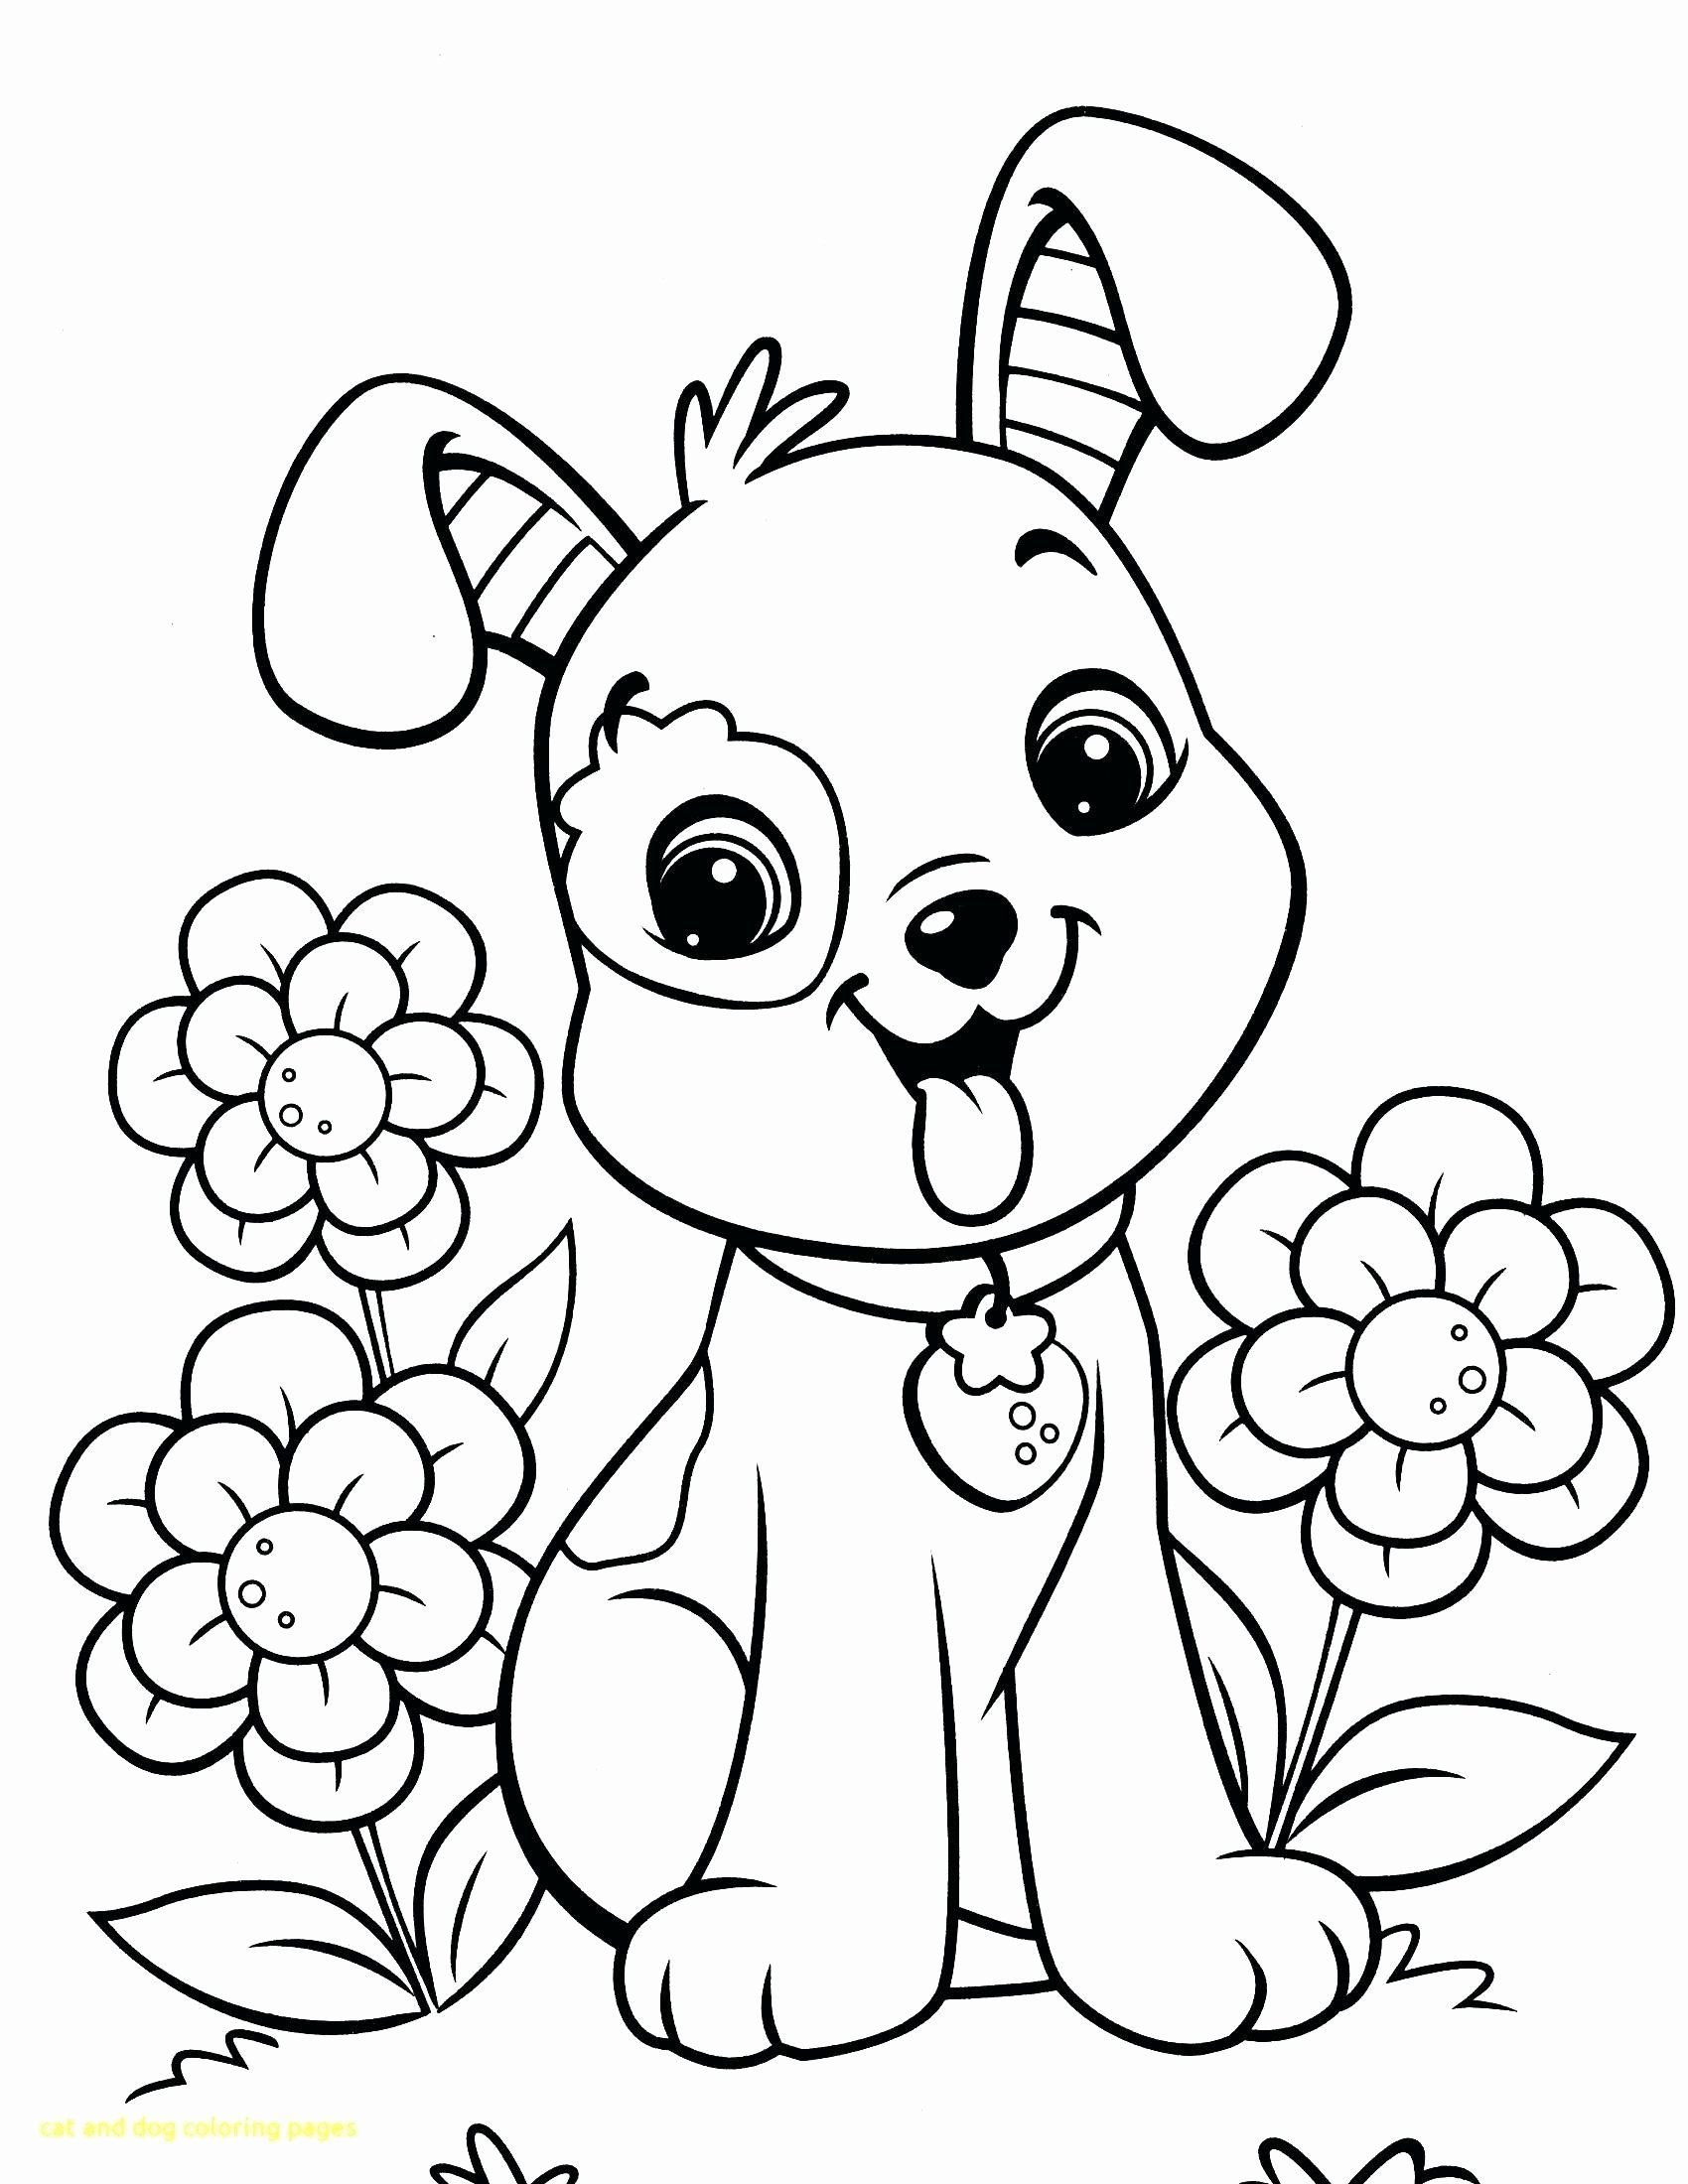 Cats Online Coloring Pages | 2200x1700